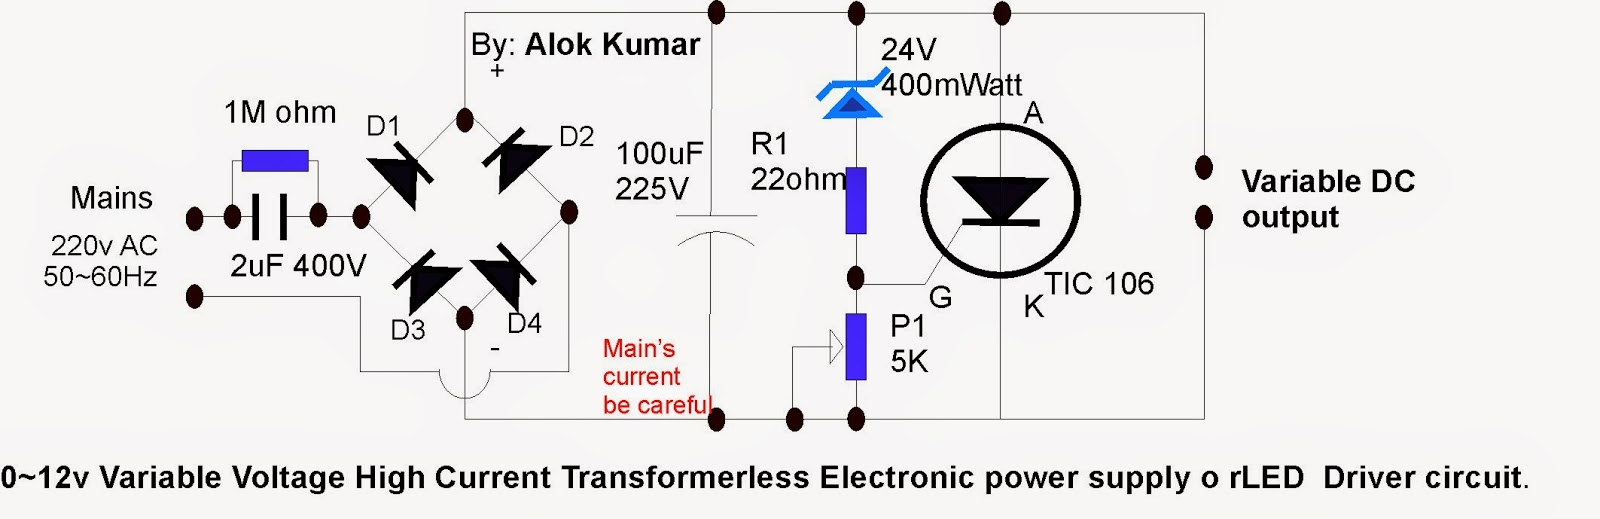 hight resolution of electronic circuits transformerless power supply led drivers circuit diagram circuit diagram battery charger using scr